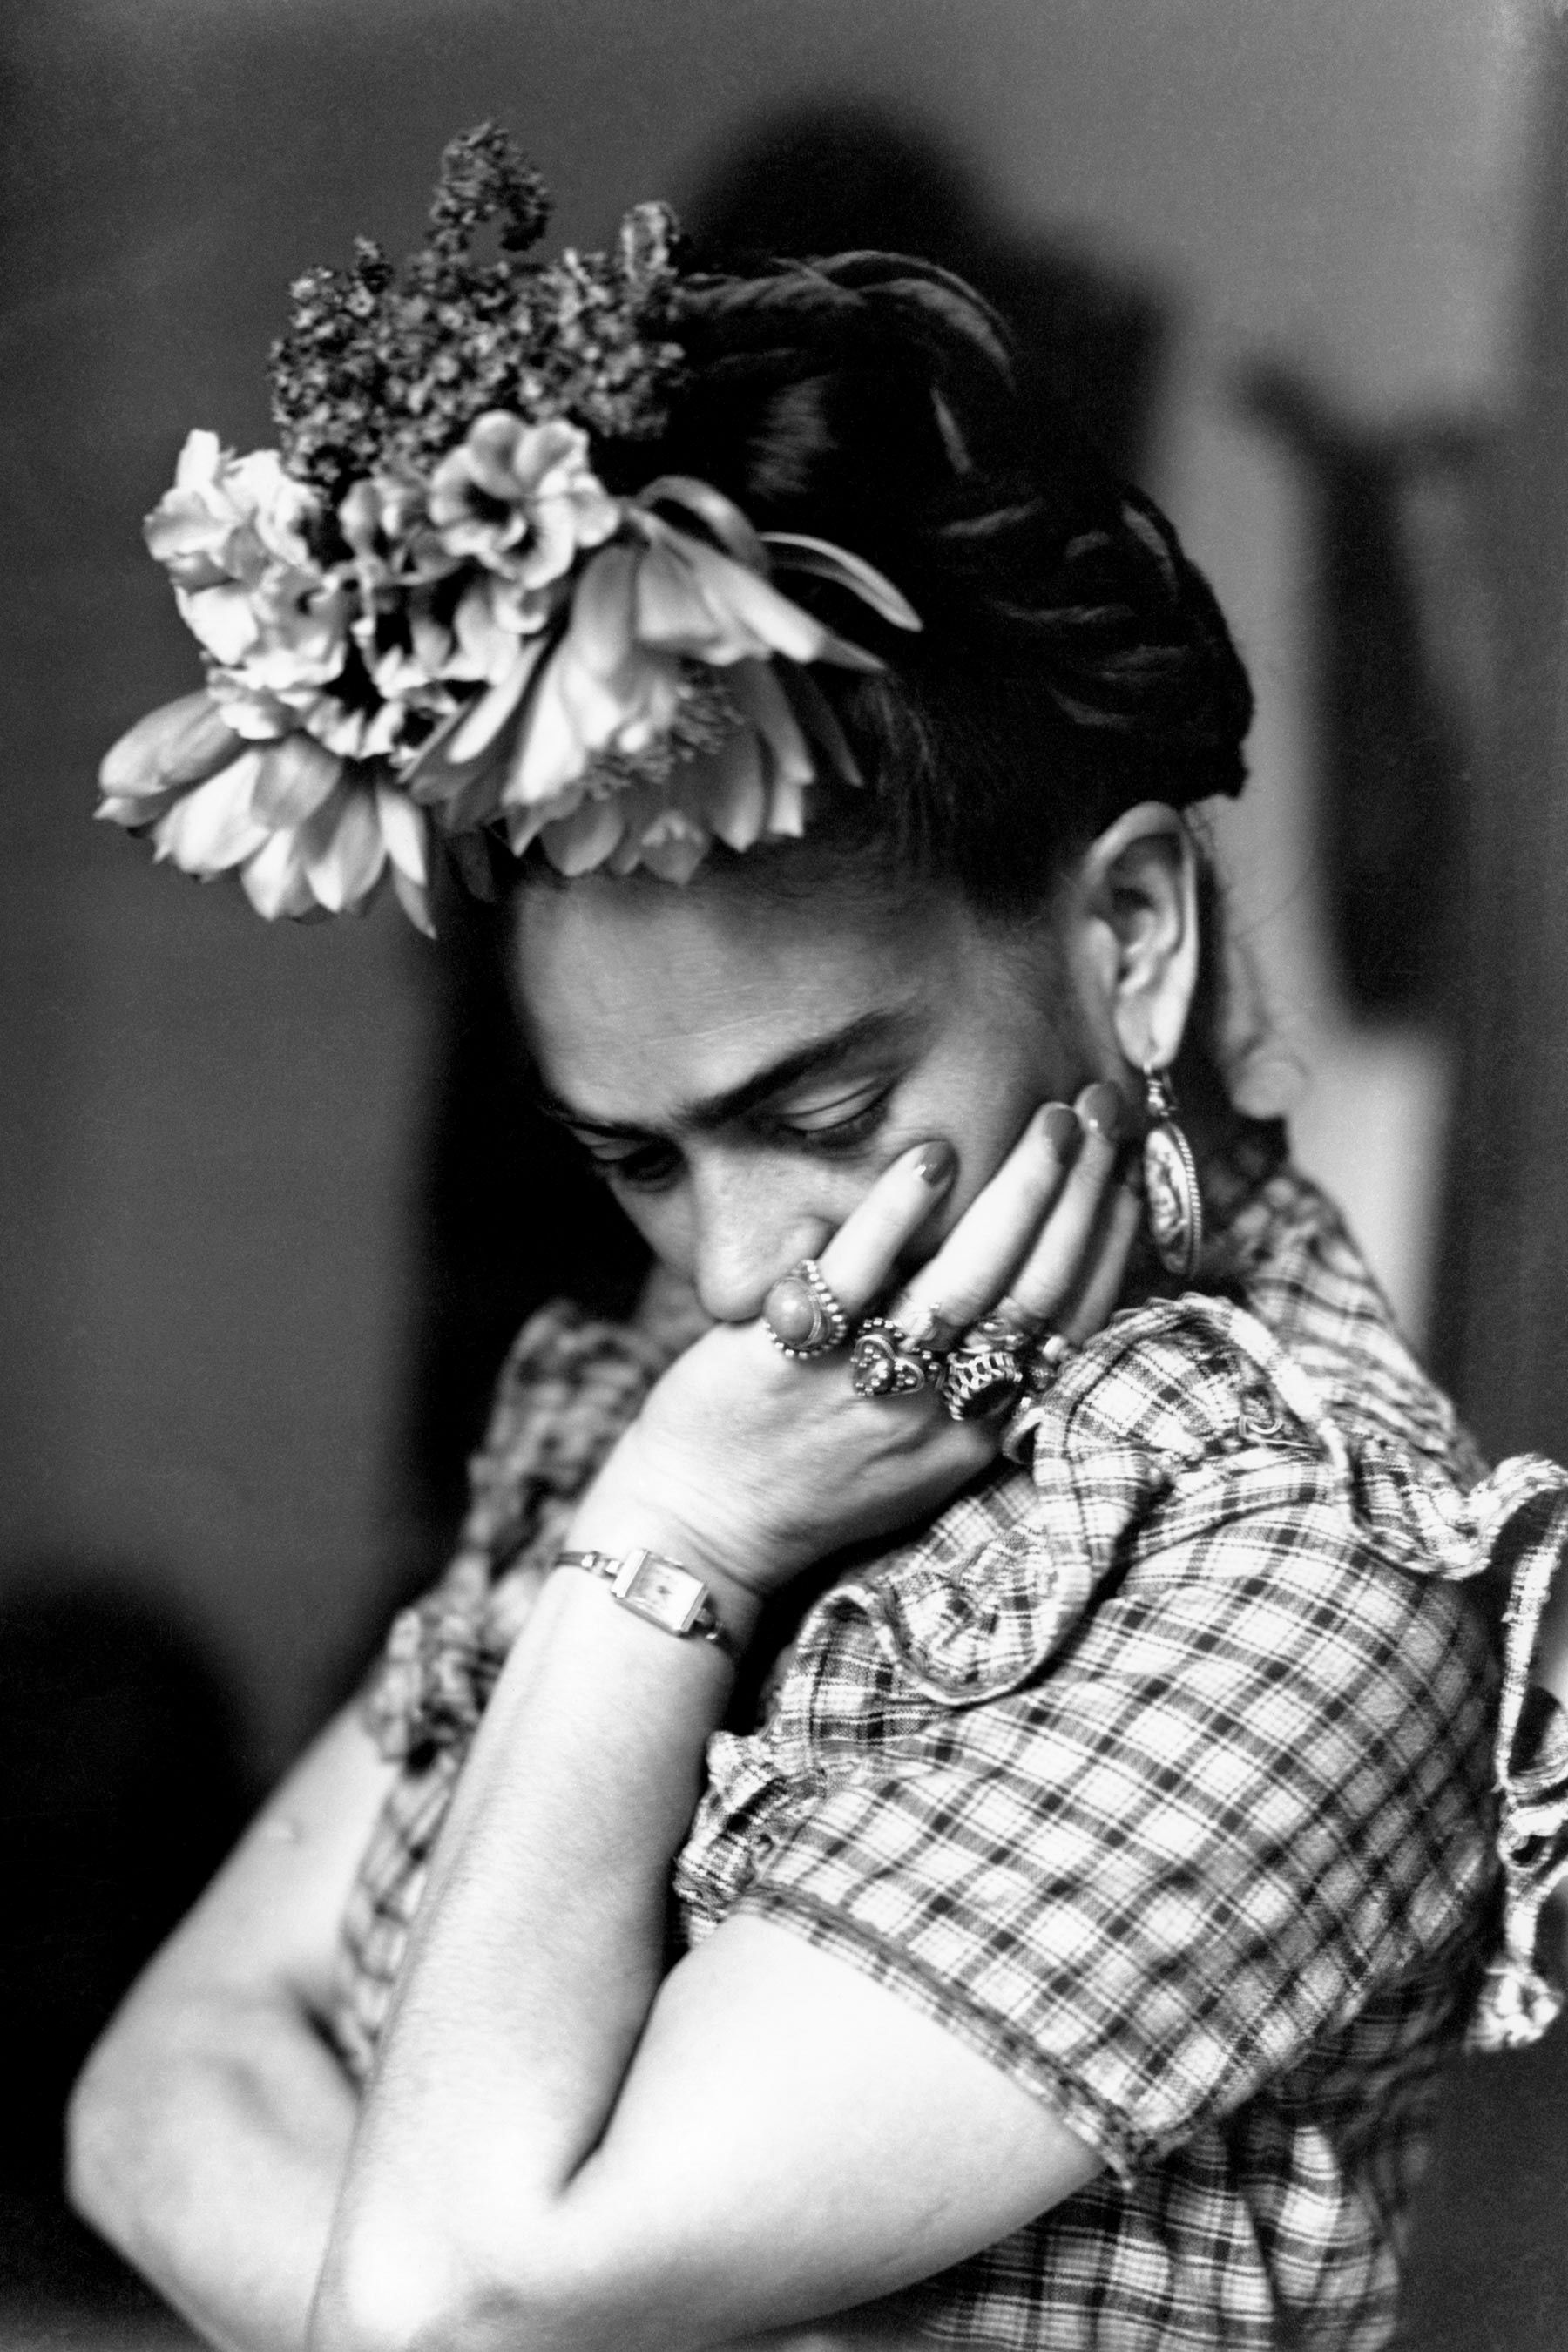 Pin By Aimee Elizabeth Swank On Frida Kahlo In Photos In 2020